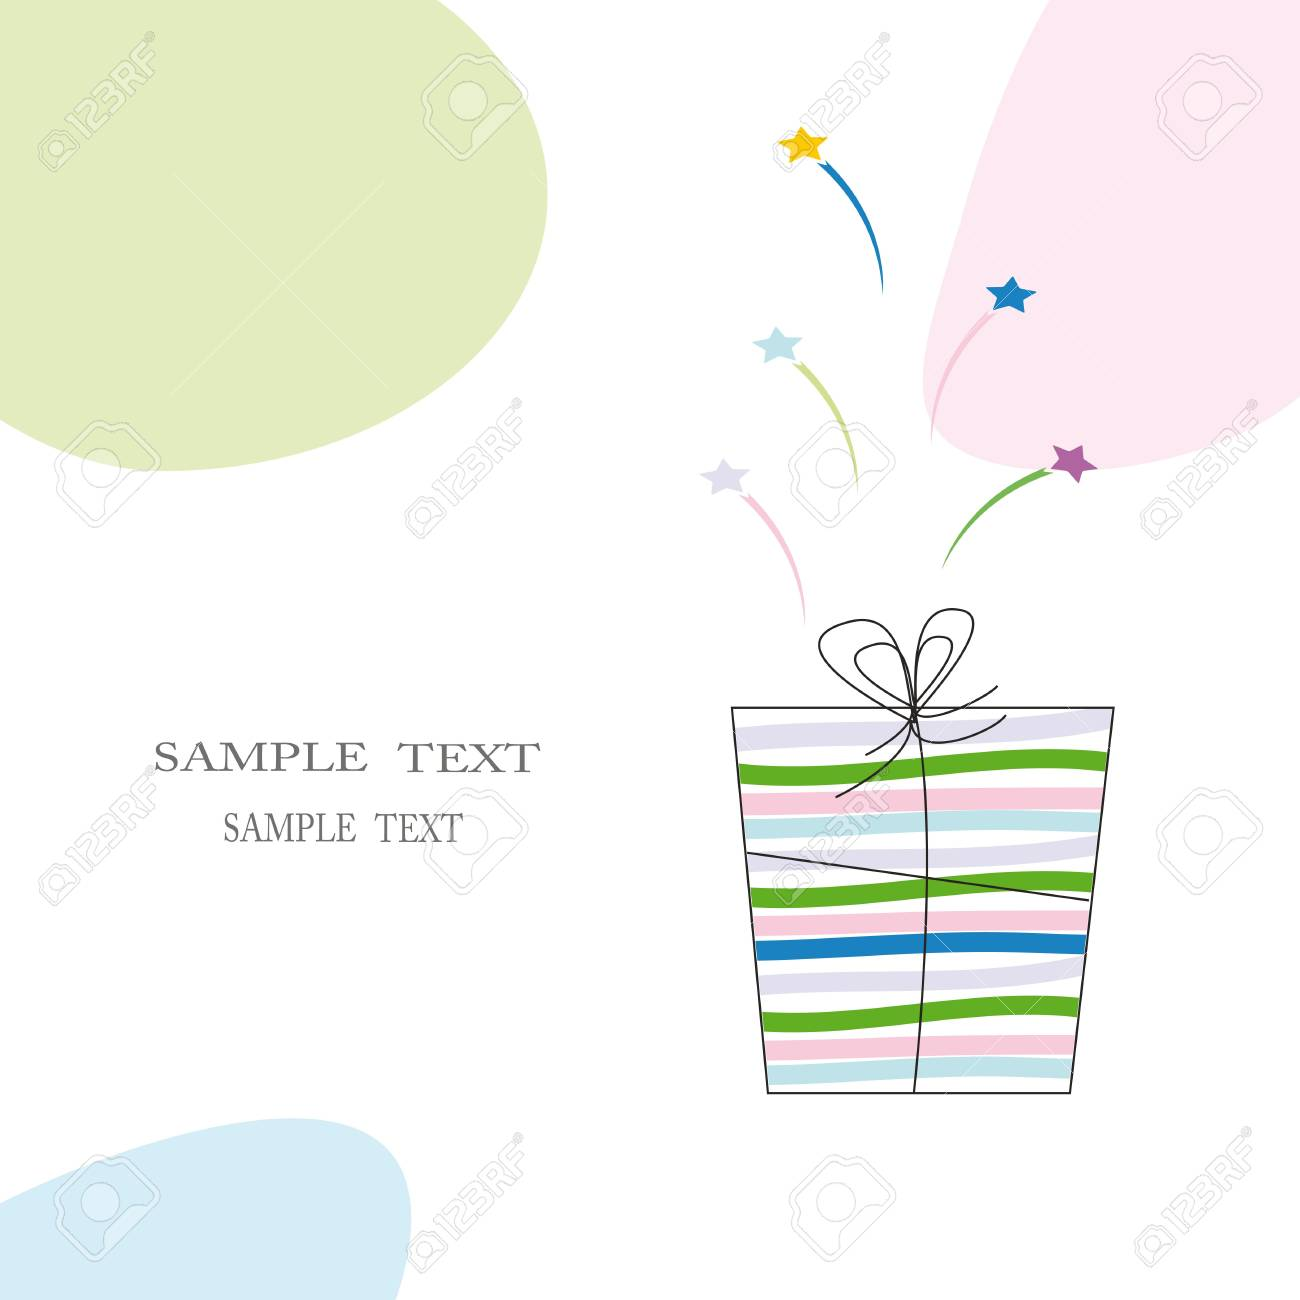 Cute card on festive occasion Stock Vector - 8509272